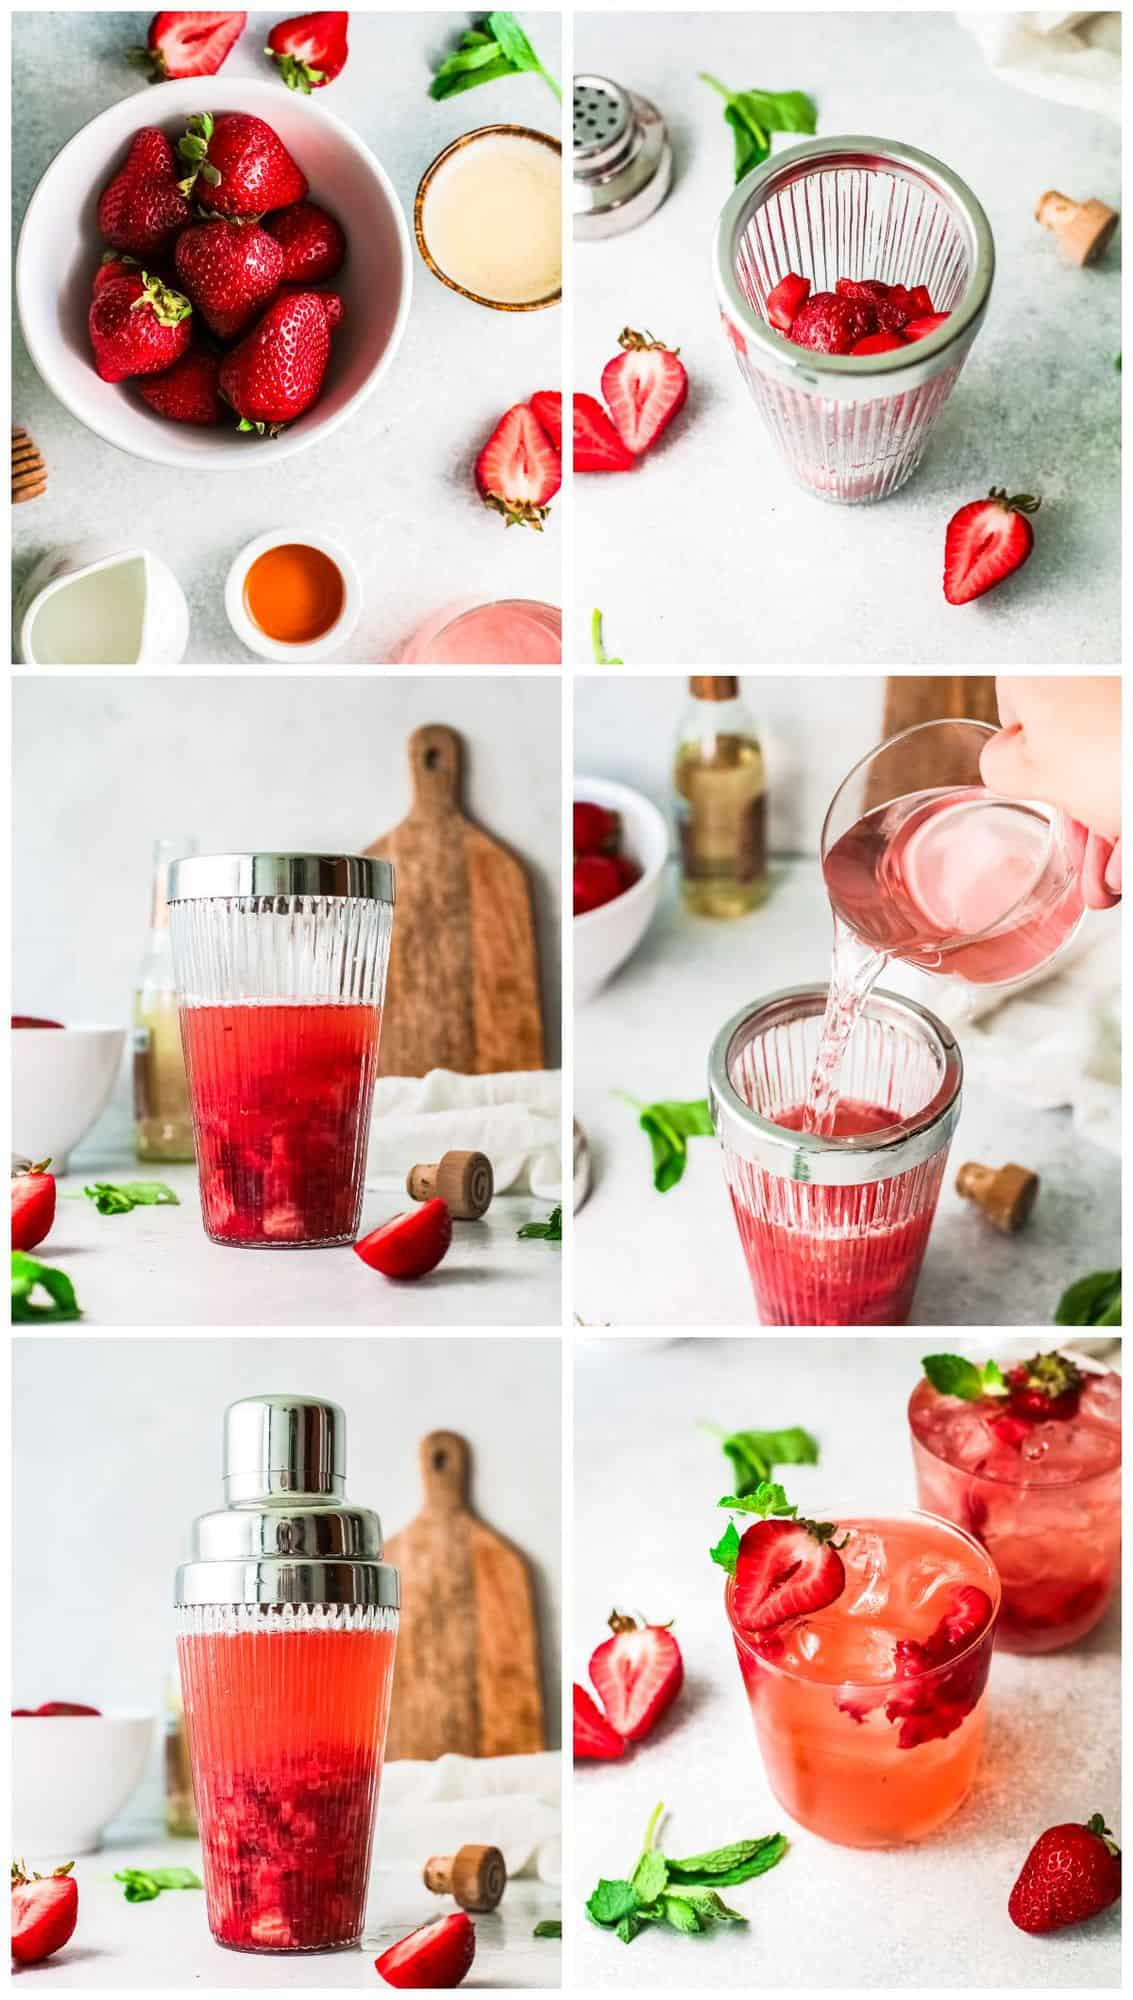 step by step photos for how to make strawberry palomas